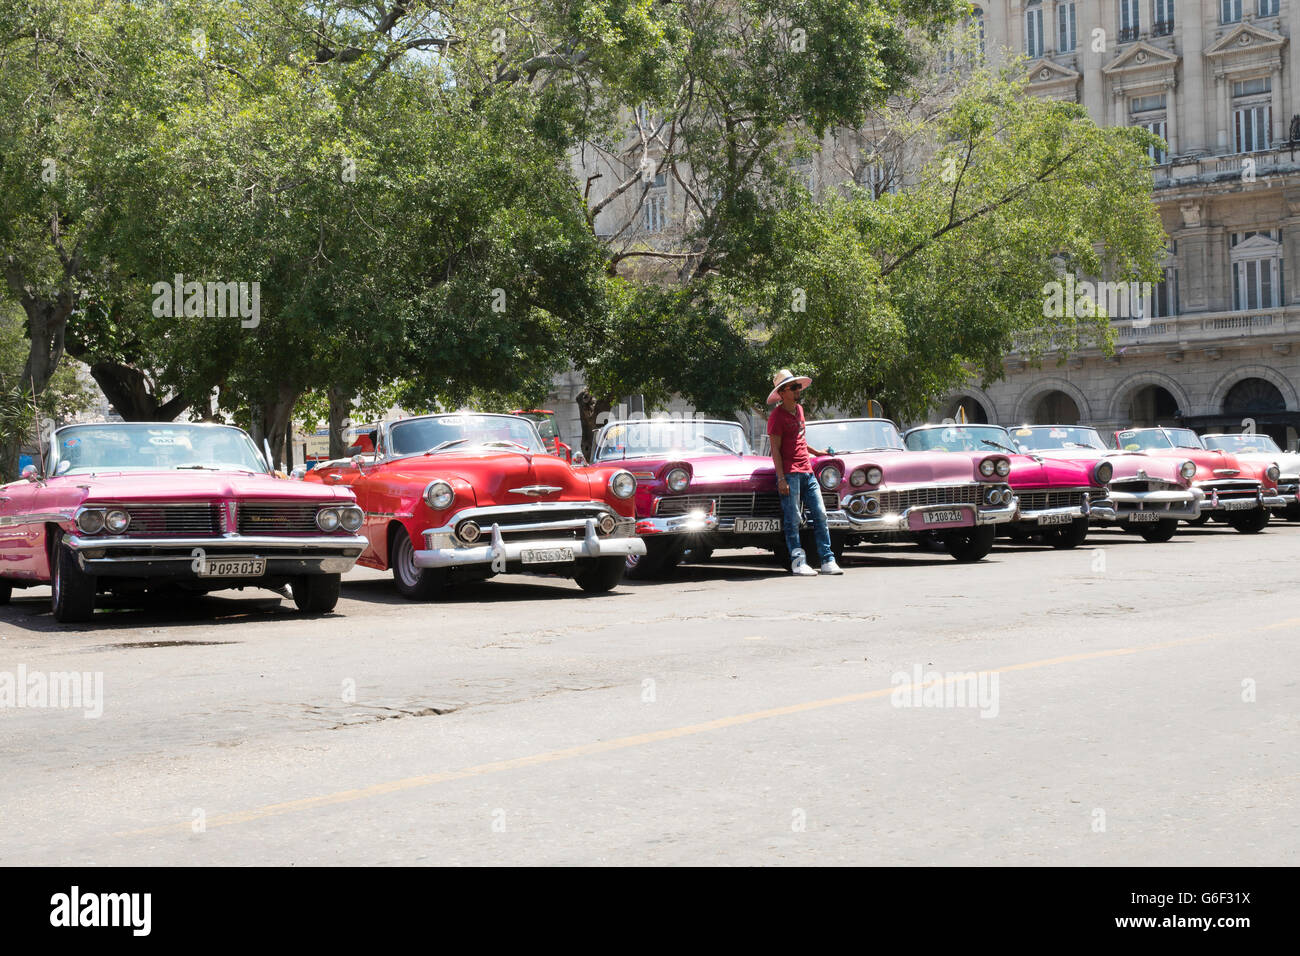 A row of classic convertibles for hire in Havana, Cuba - Stock Image